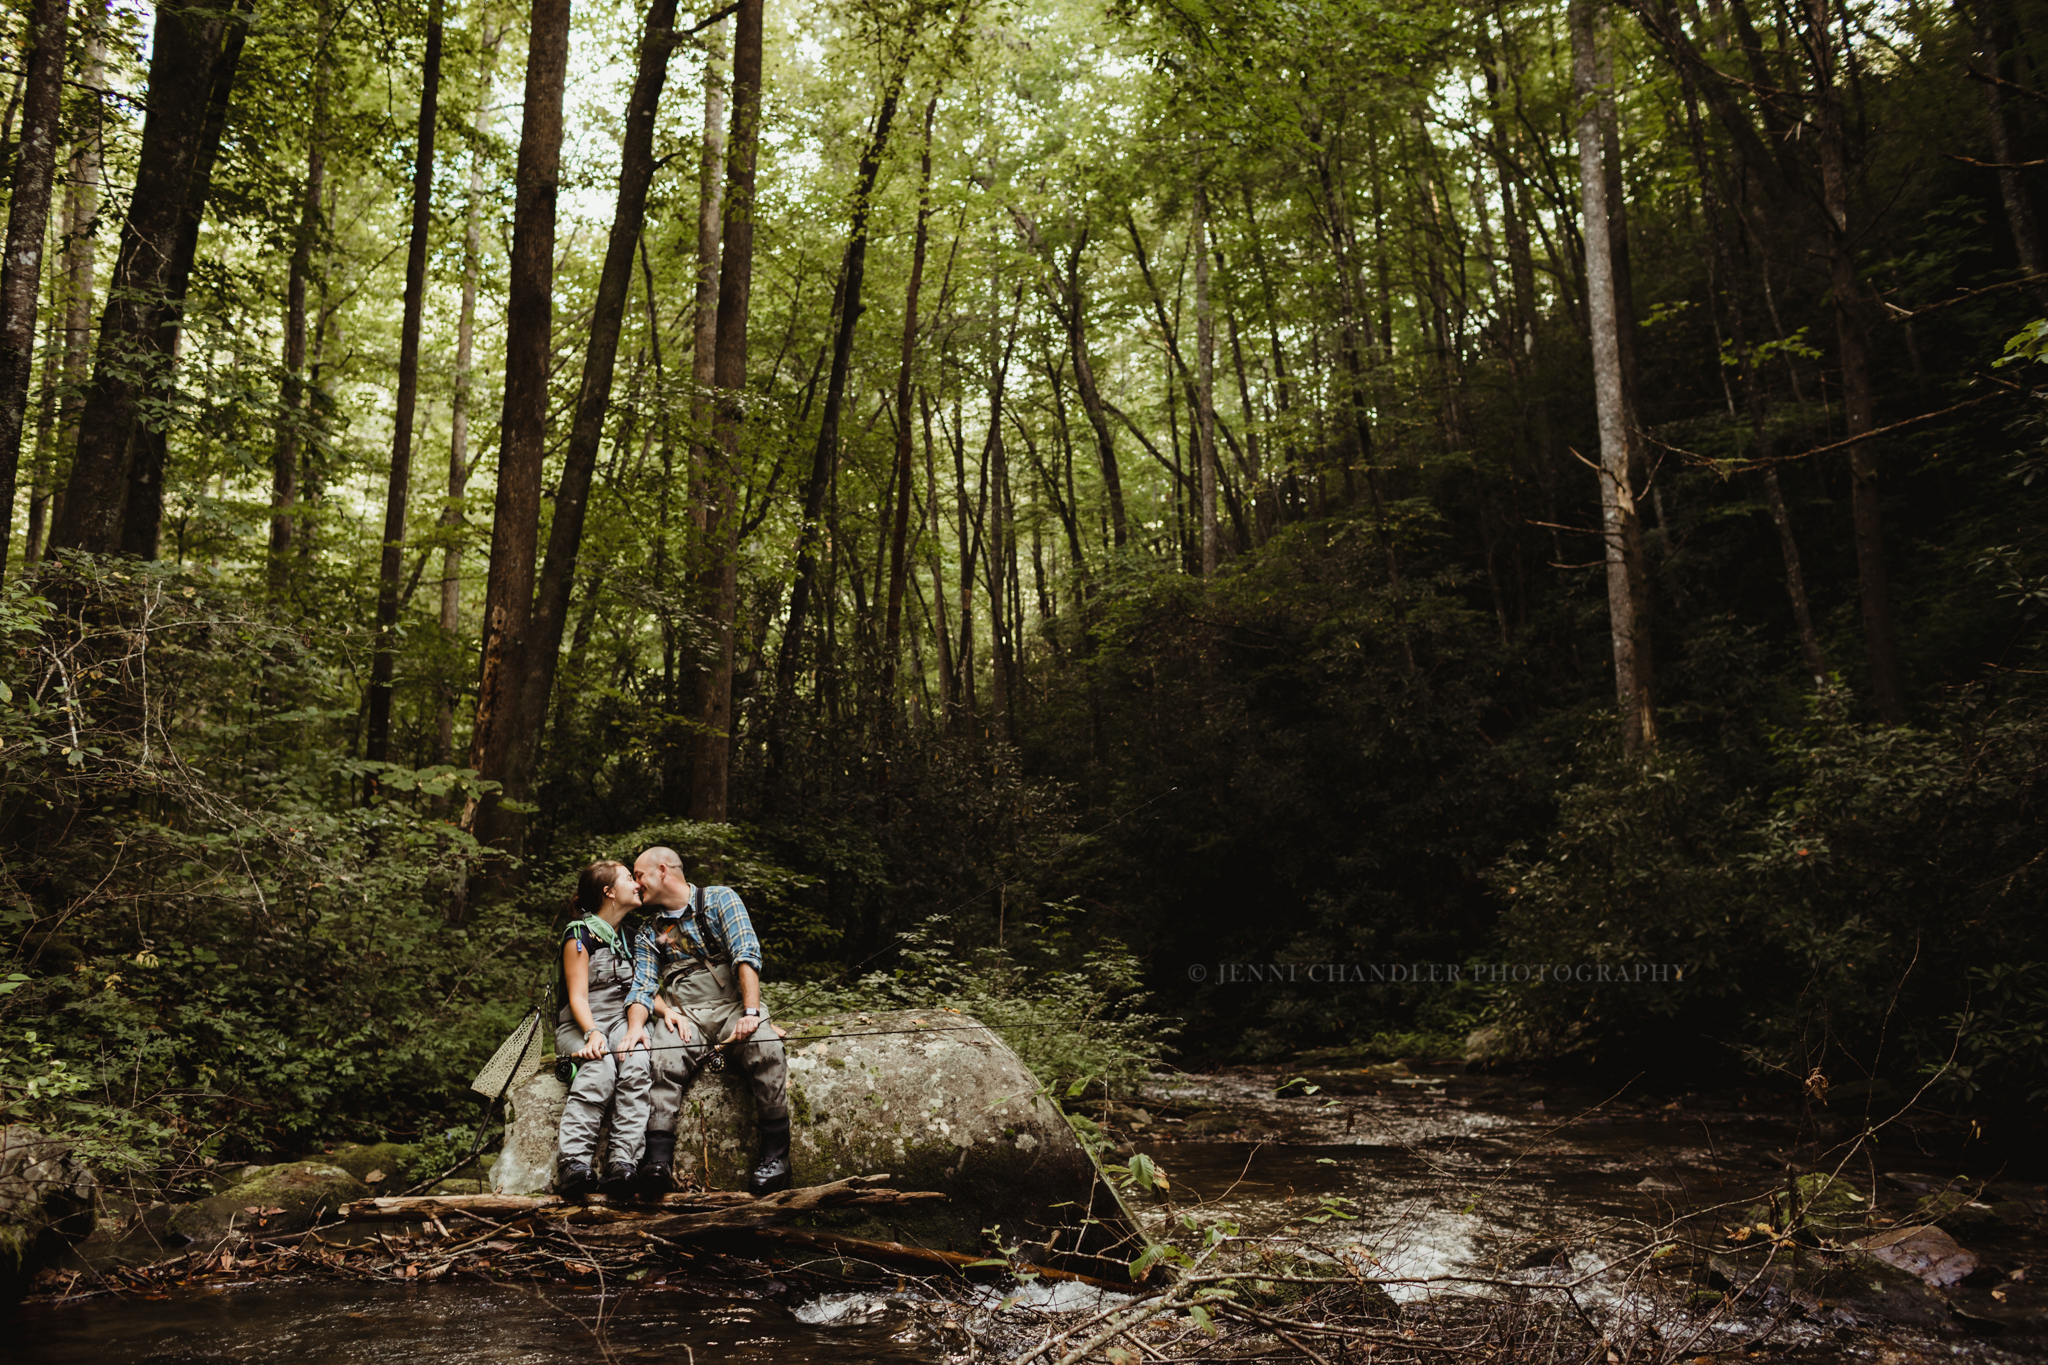 engaged, christmas tree farm, fly fishing, black balsam knob, engagement, engagement session, jenni chandler photography, asheville wedding photographer, brevard nc wedding photographer, brevard wedding photographer, mountain top engagement, engaged, couples in love, green wedding shoes, avl wedding guide, asheville wedding guide, looking glass falls, looking glass falls engagement, brevard nc, we are brevard, brevard photographer, brevard wedding, wnc wedding, wnc events